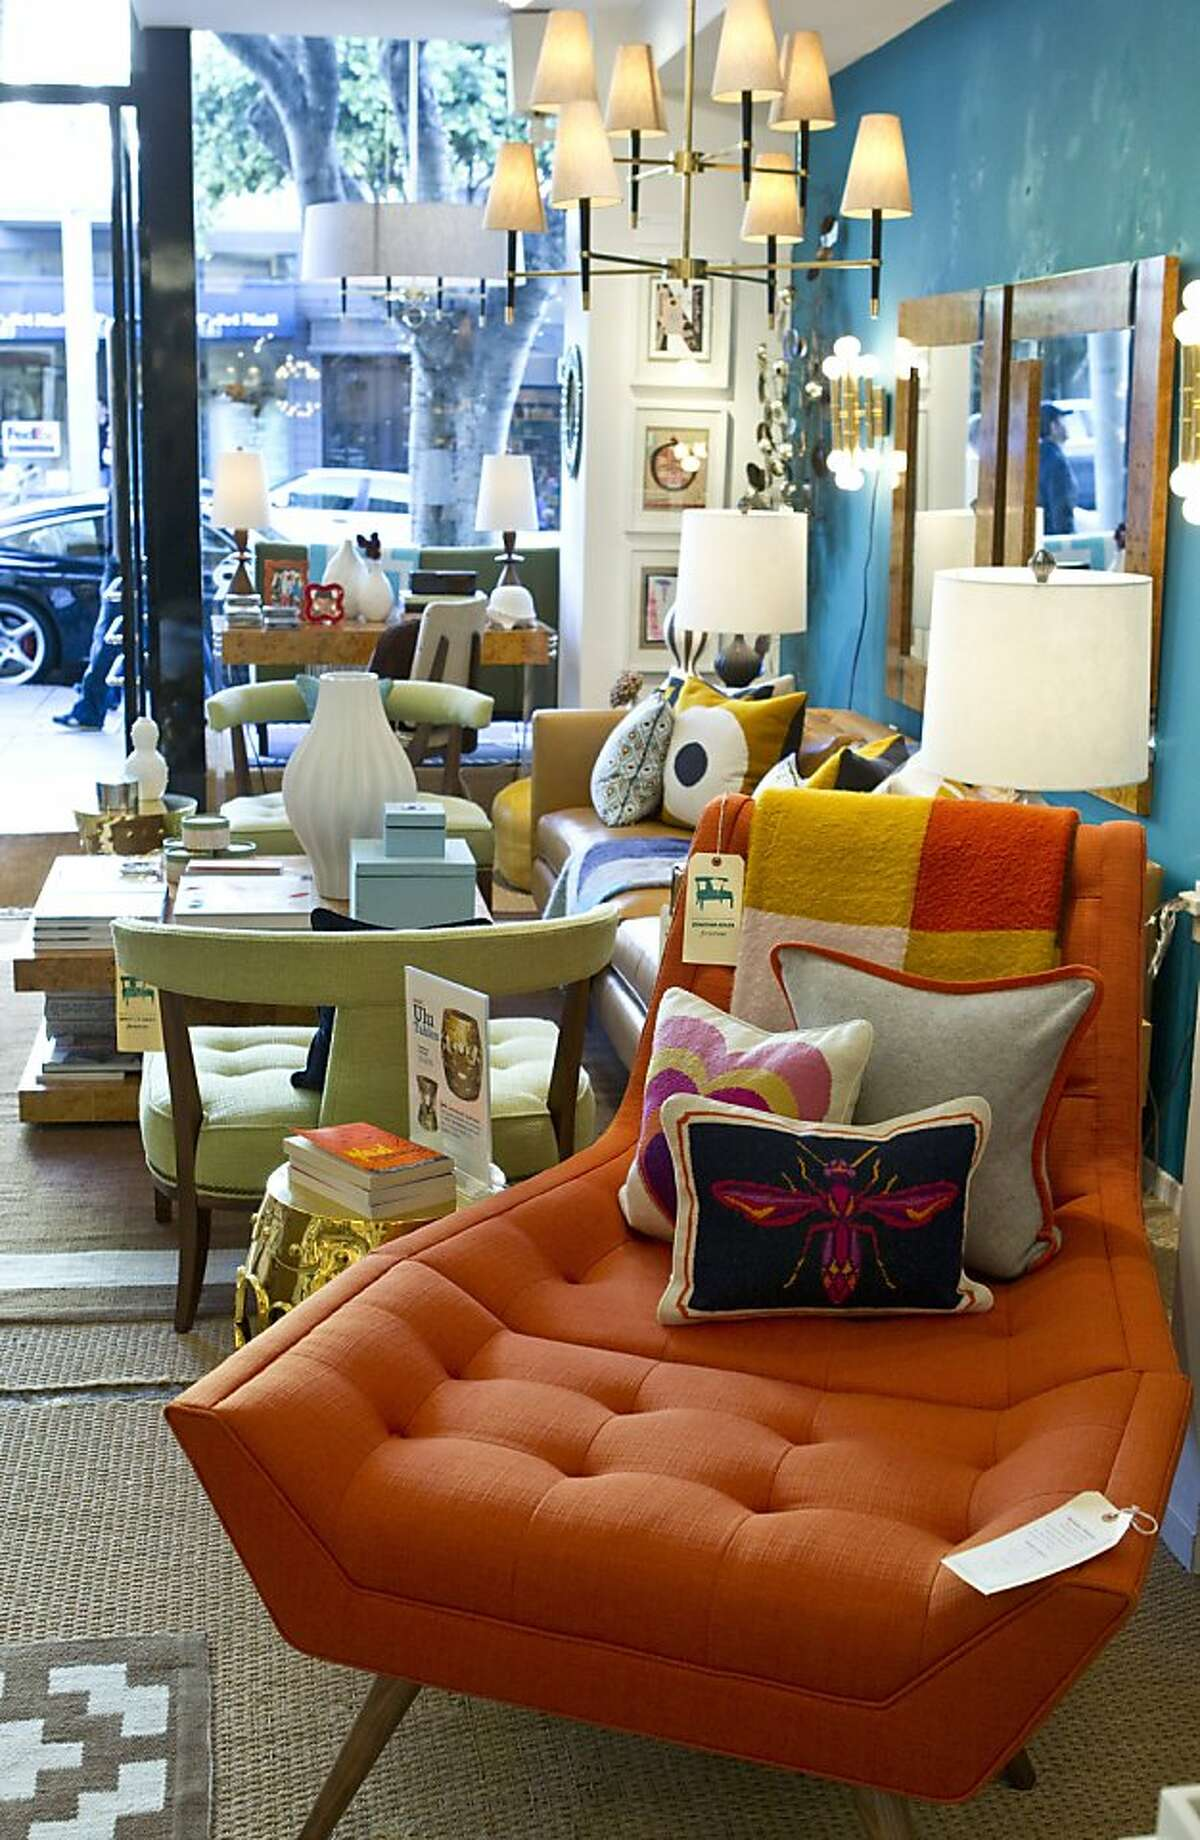 Colorful furnishings sit on display at the Jonathan Adler store, located at 2133 Fillmore Street in San Francisco, Calif., on Thursday, October 6, 2011.